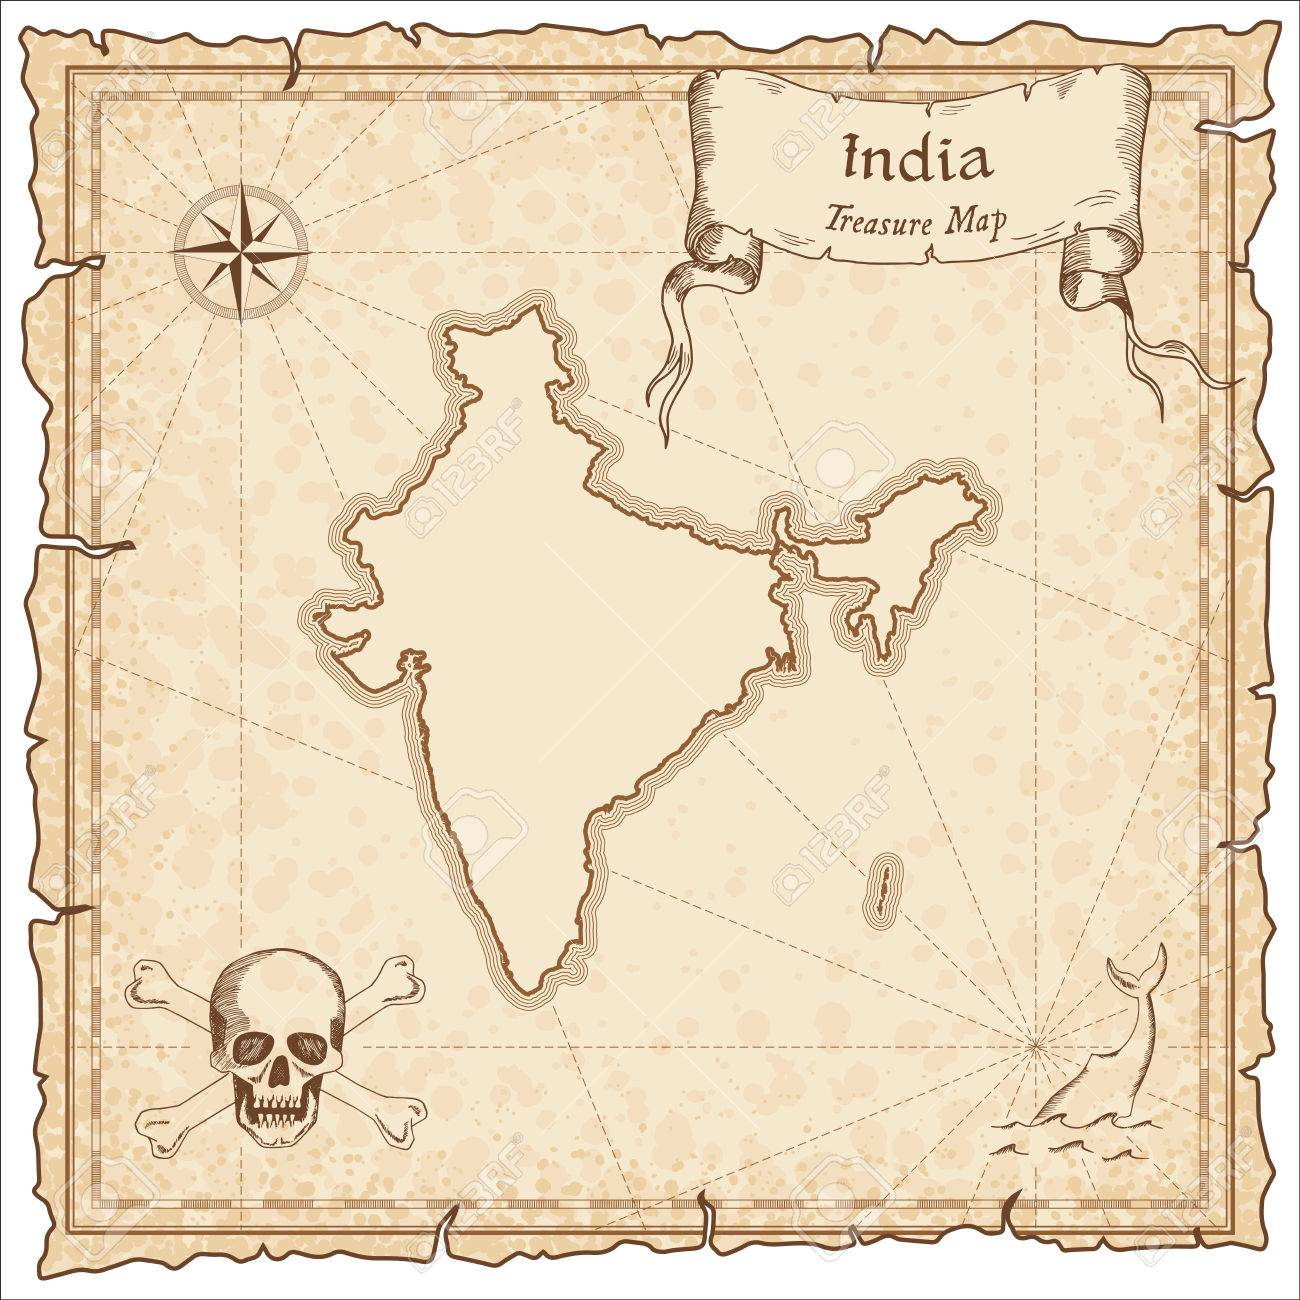 India Old Pirate Map. Sepia Engraved Template Of Treasure Map ...